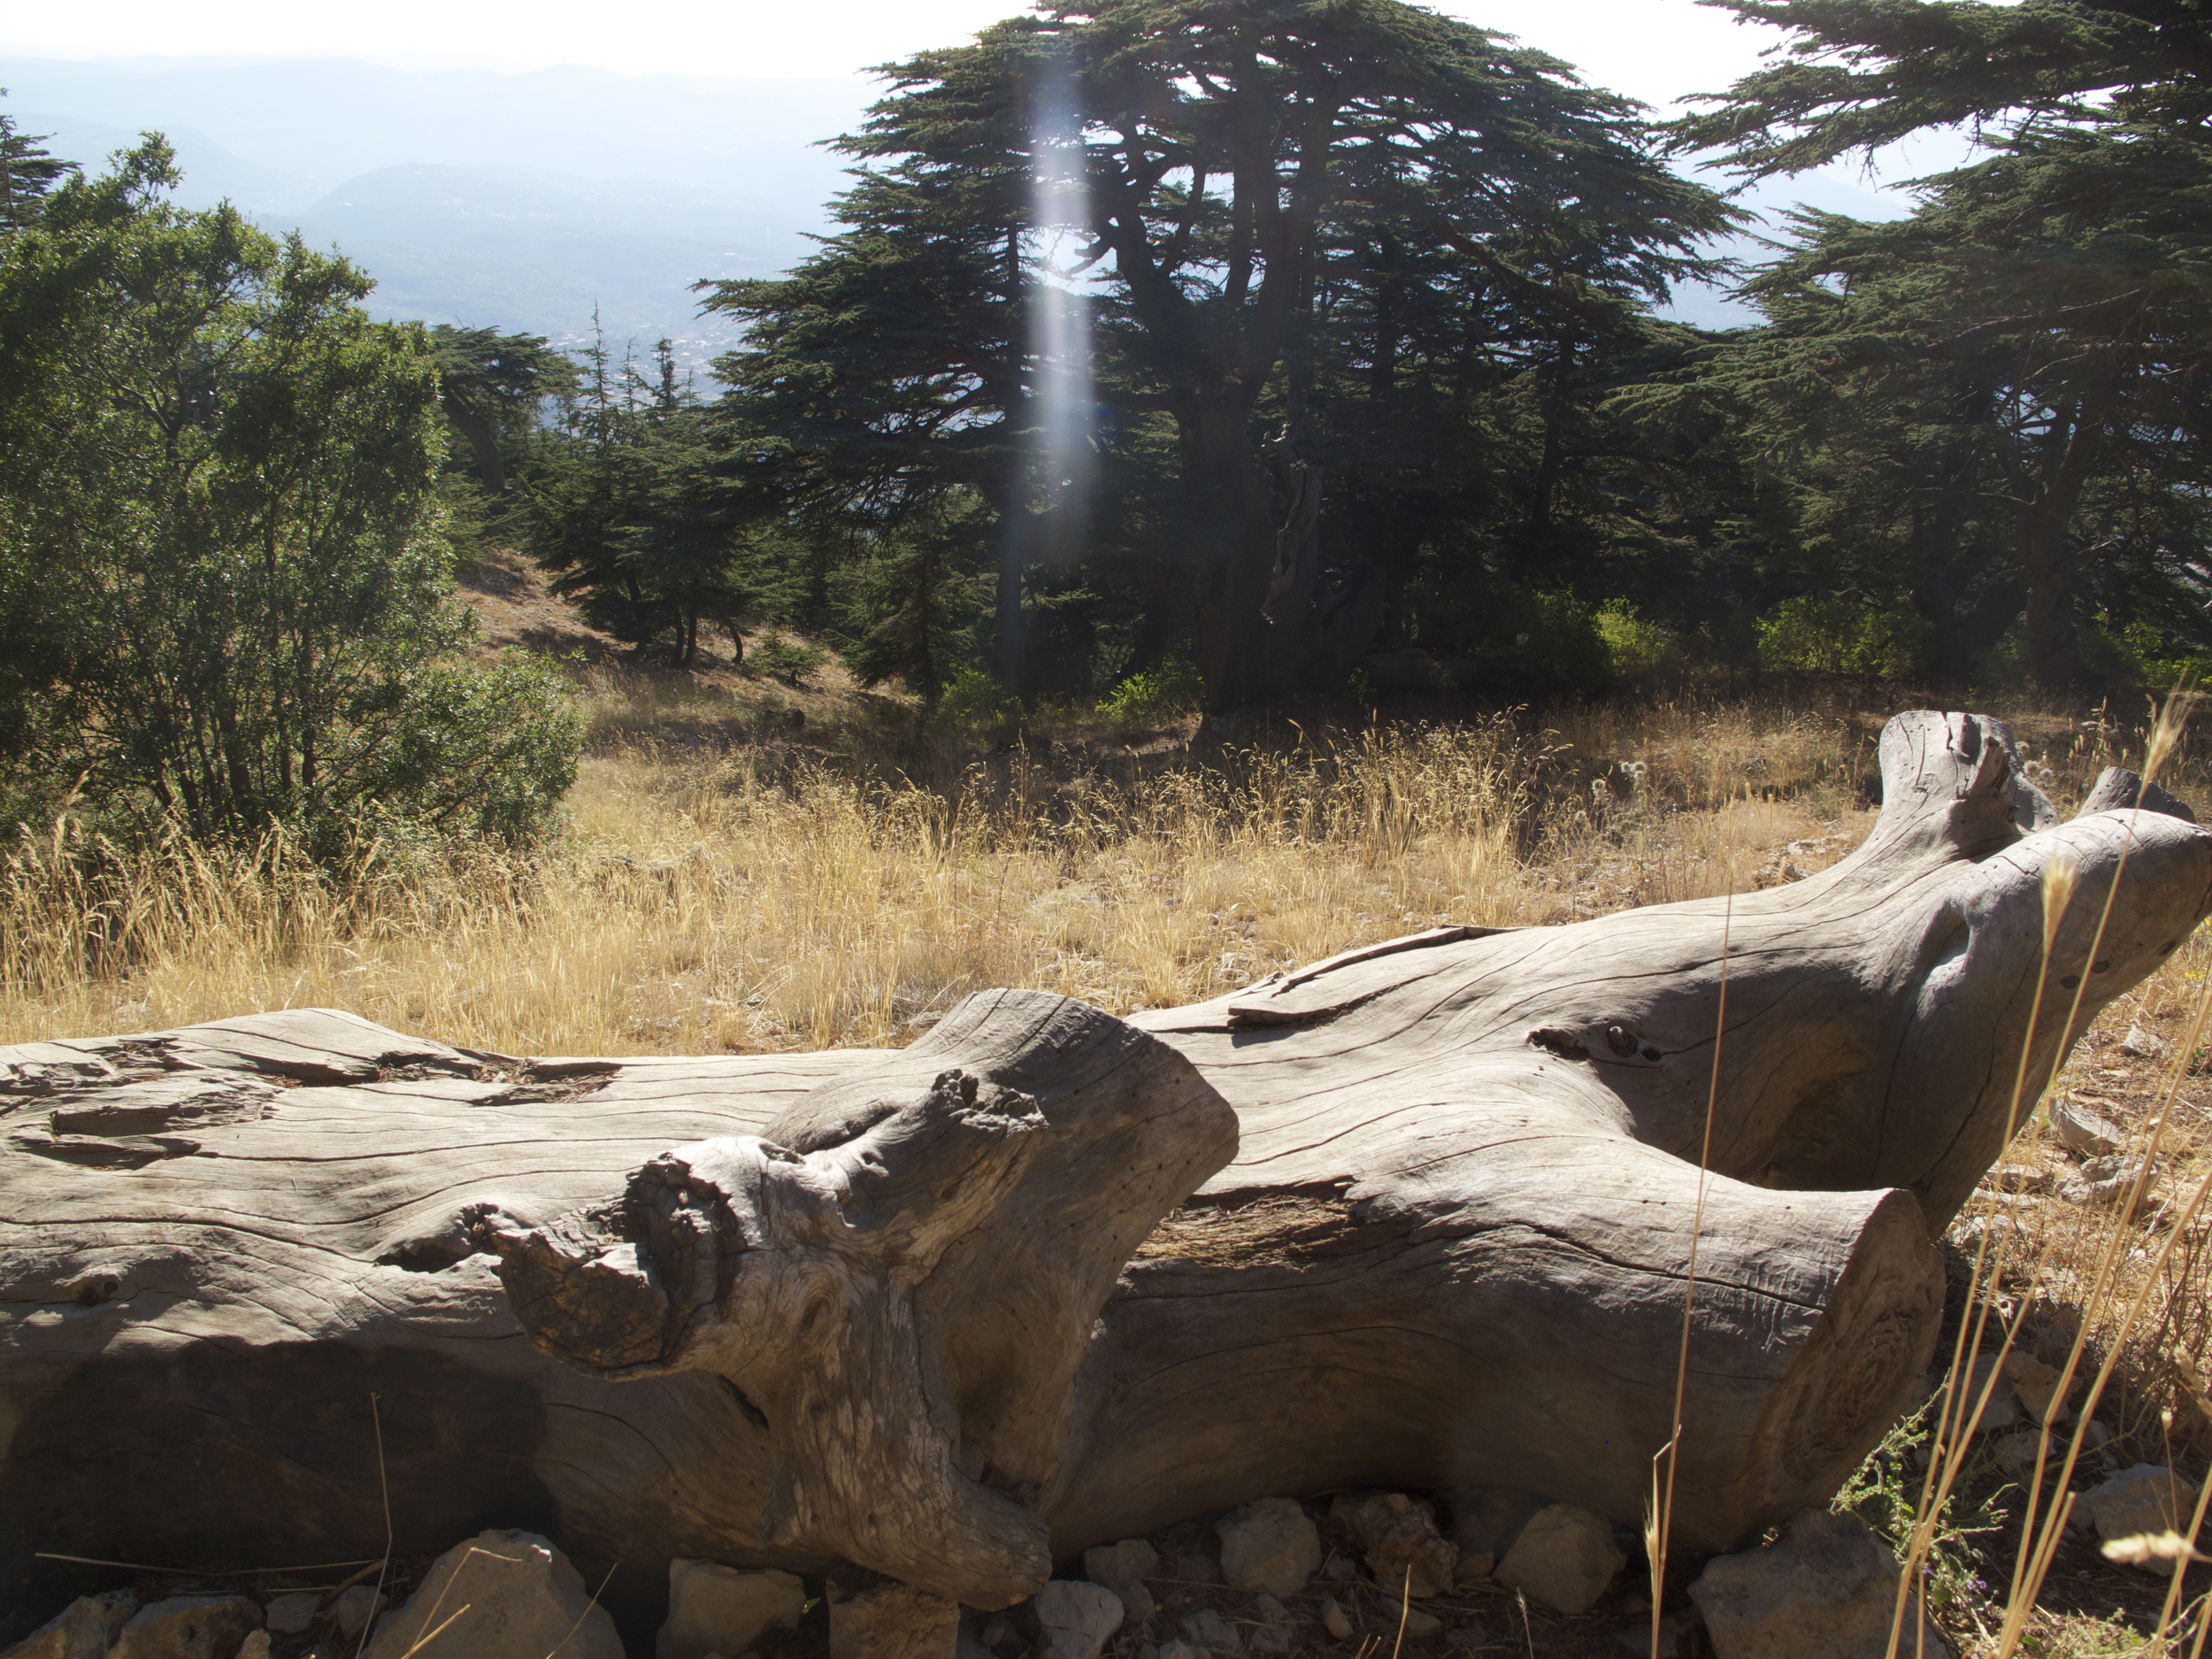 Ancient Cedar forests of Shouf, Lebanon.